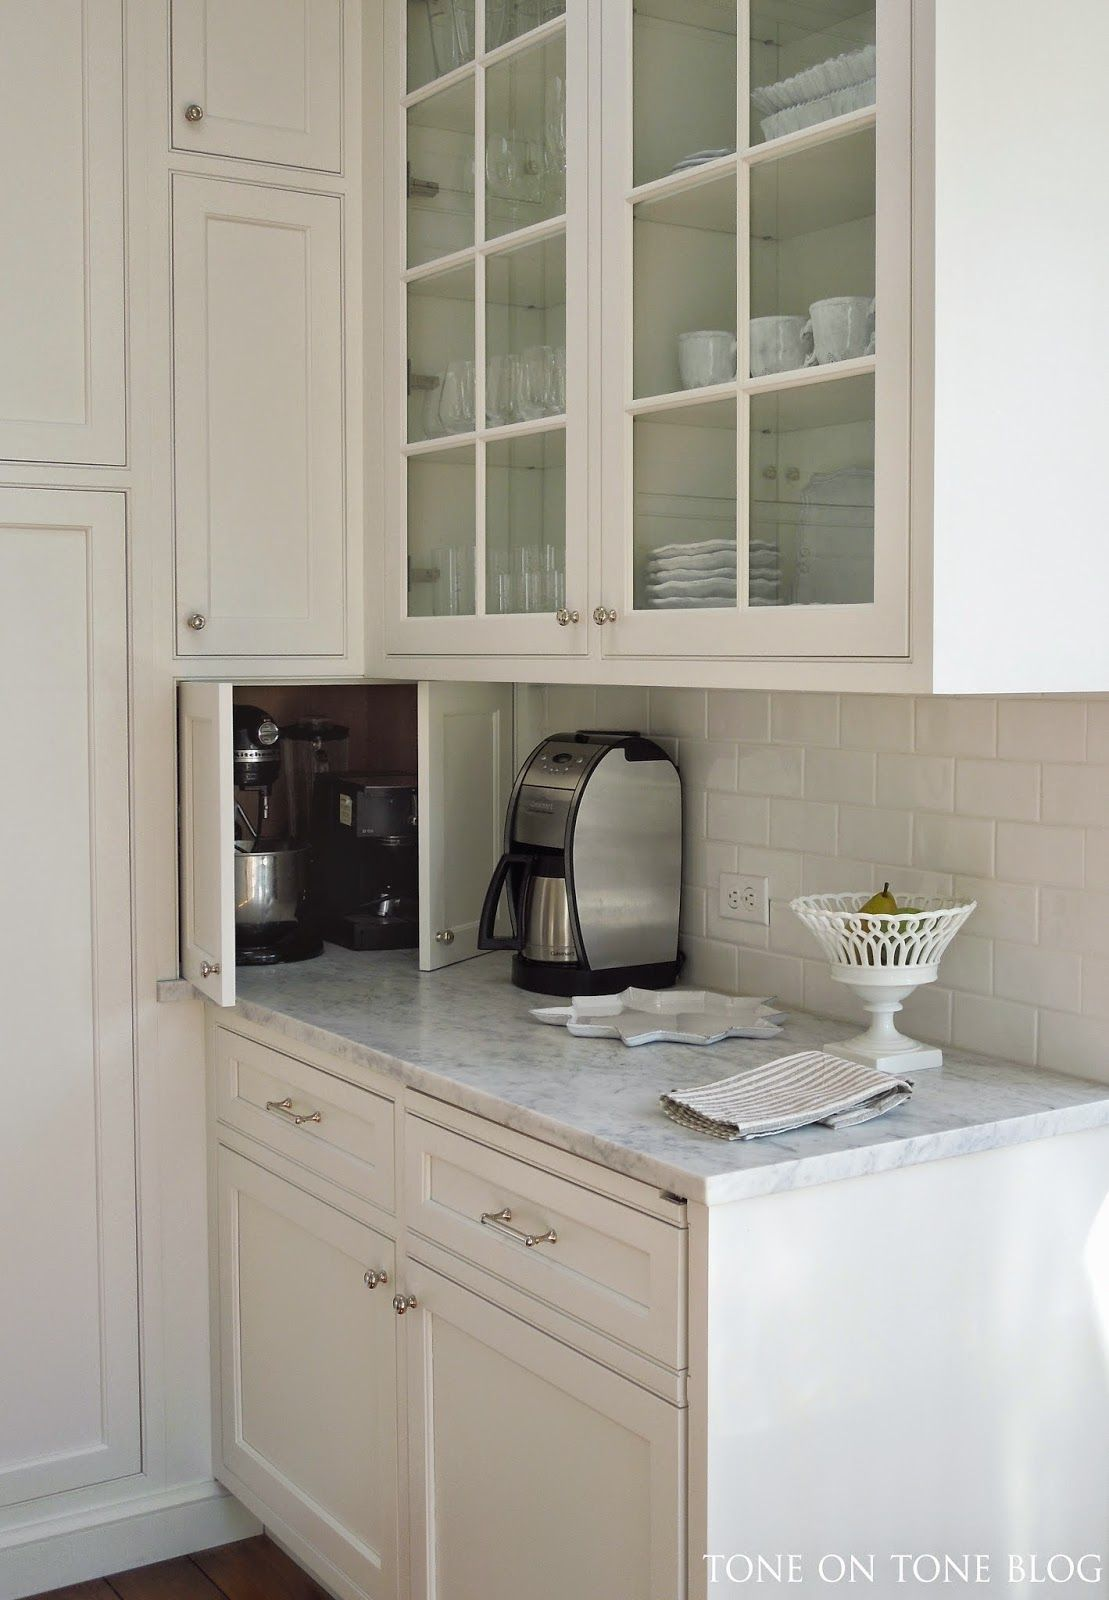 Tone On Tone Shades Of Gray And White Kitchen Marble Corner